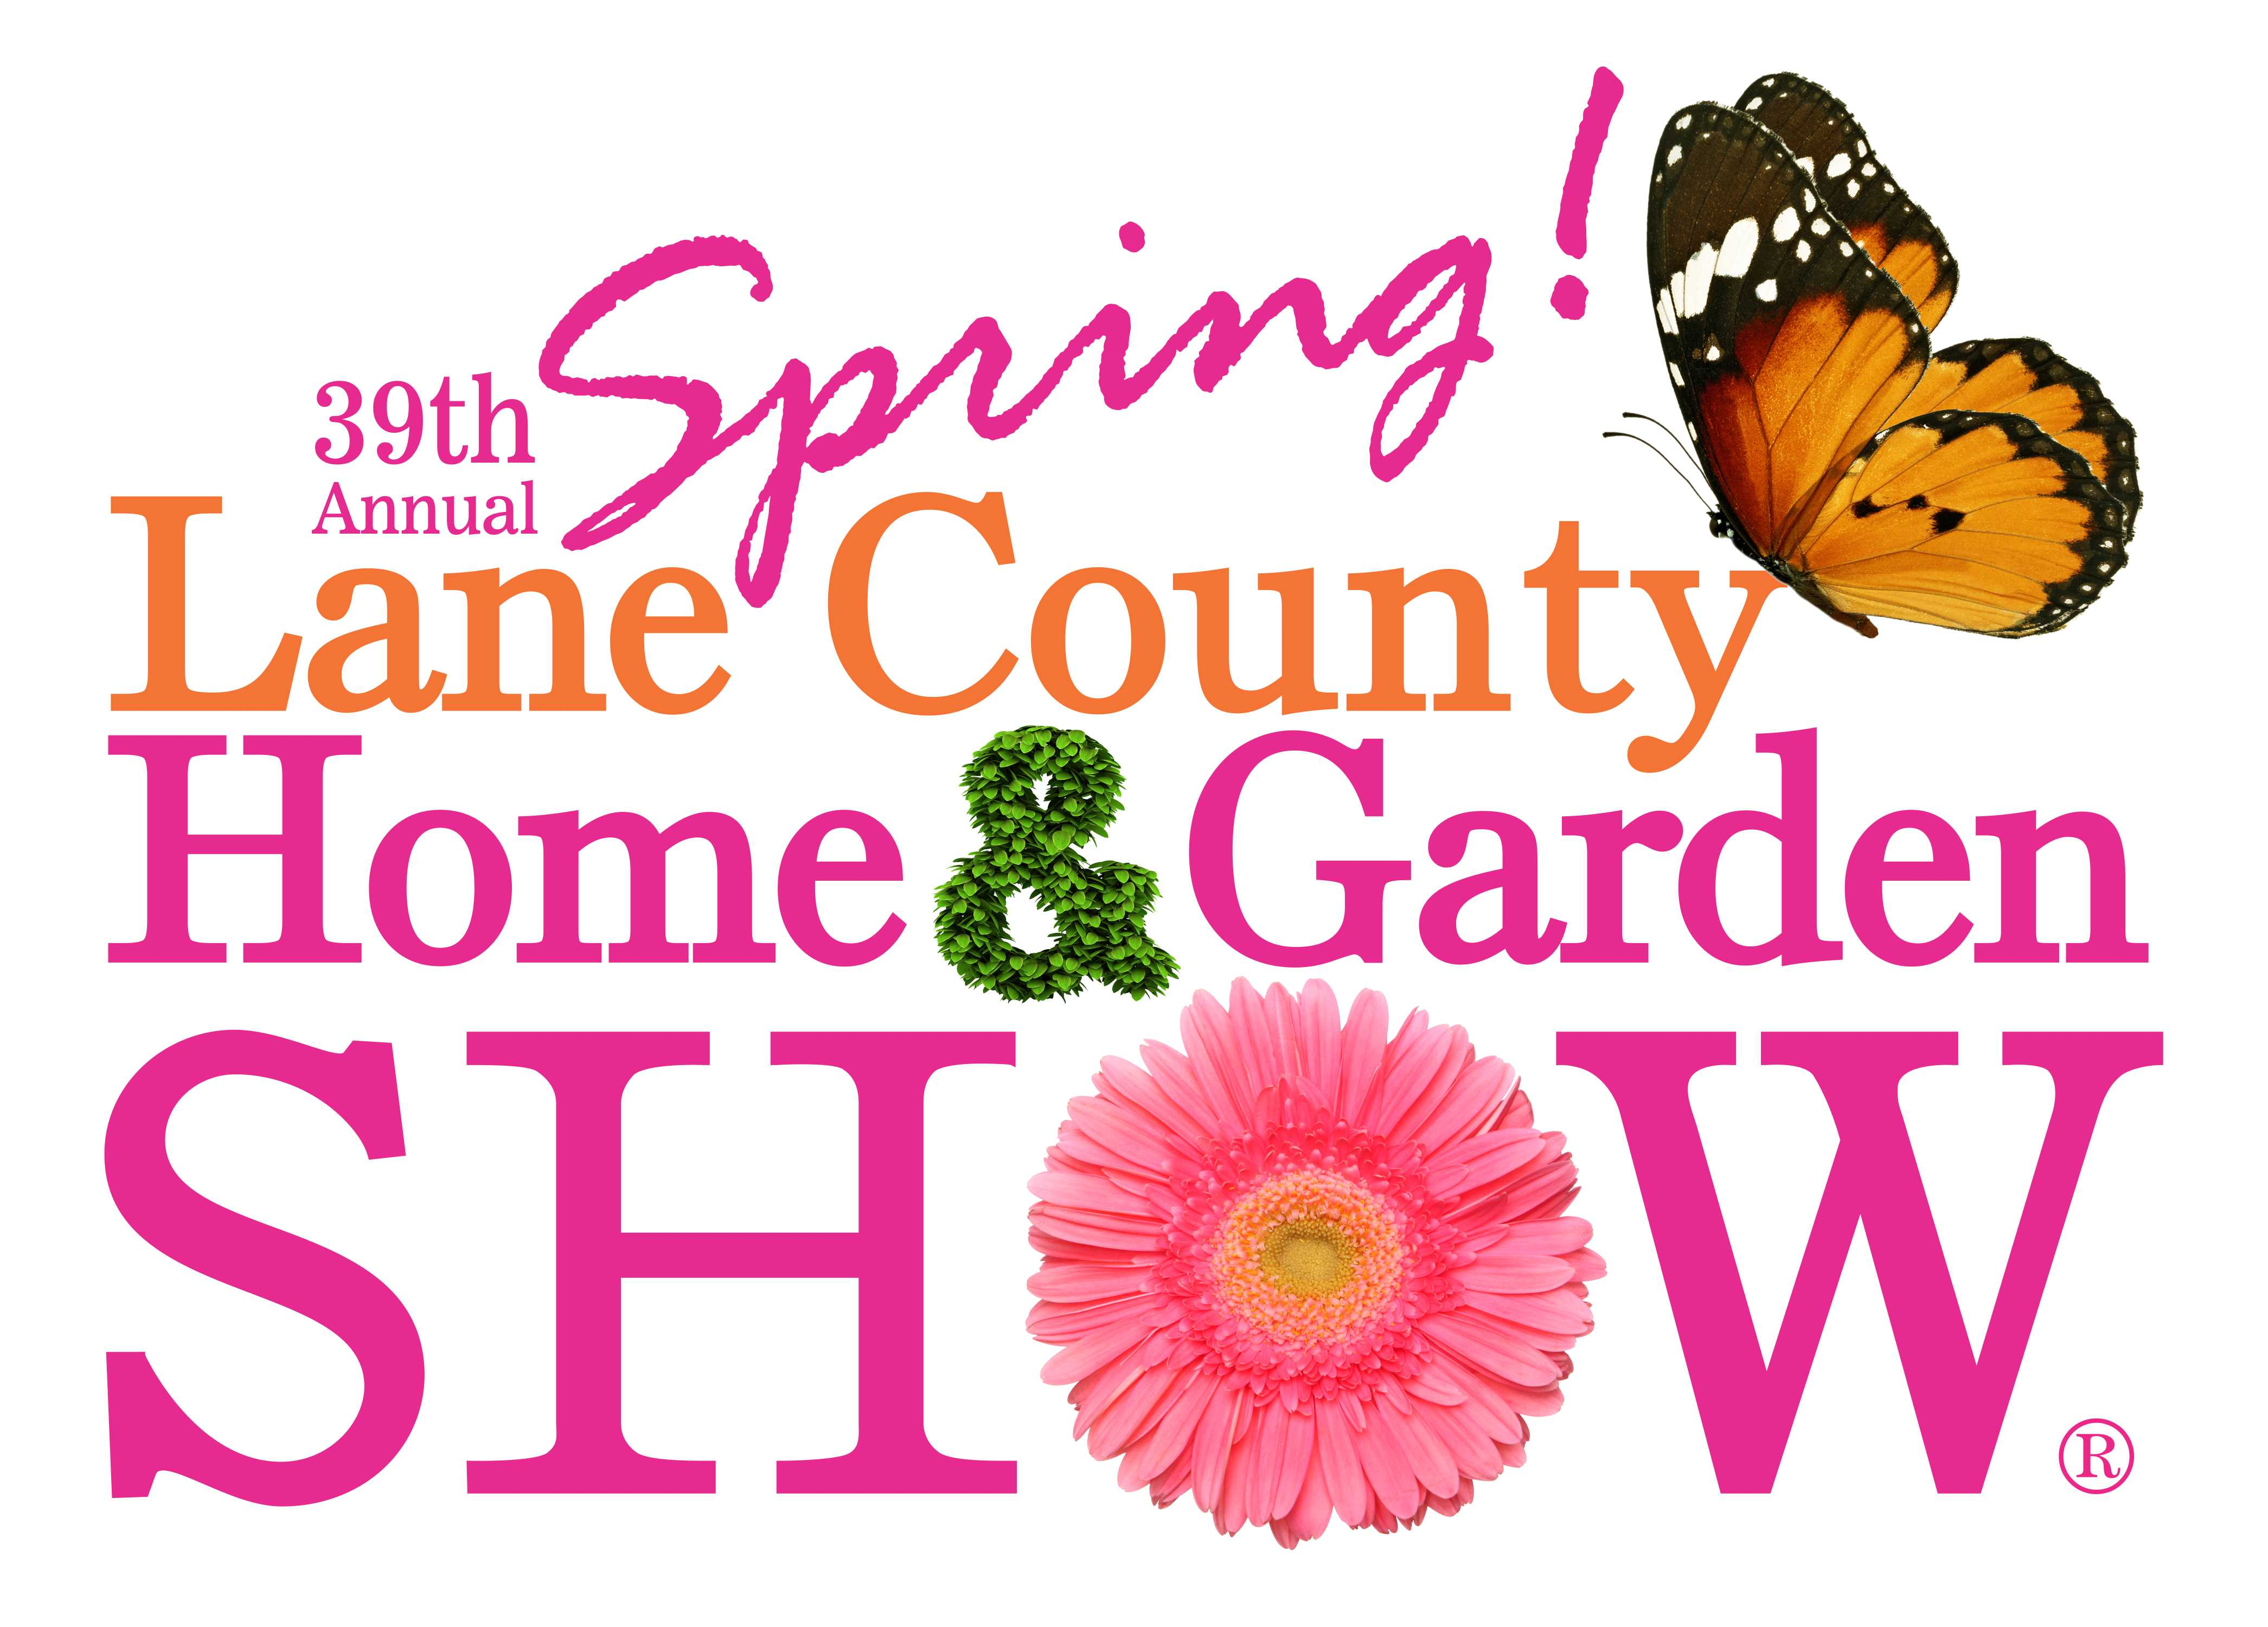 39th lane county home and garden show